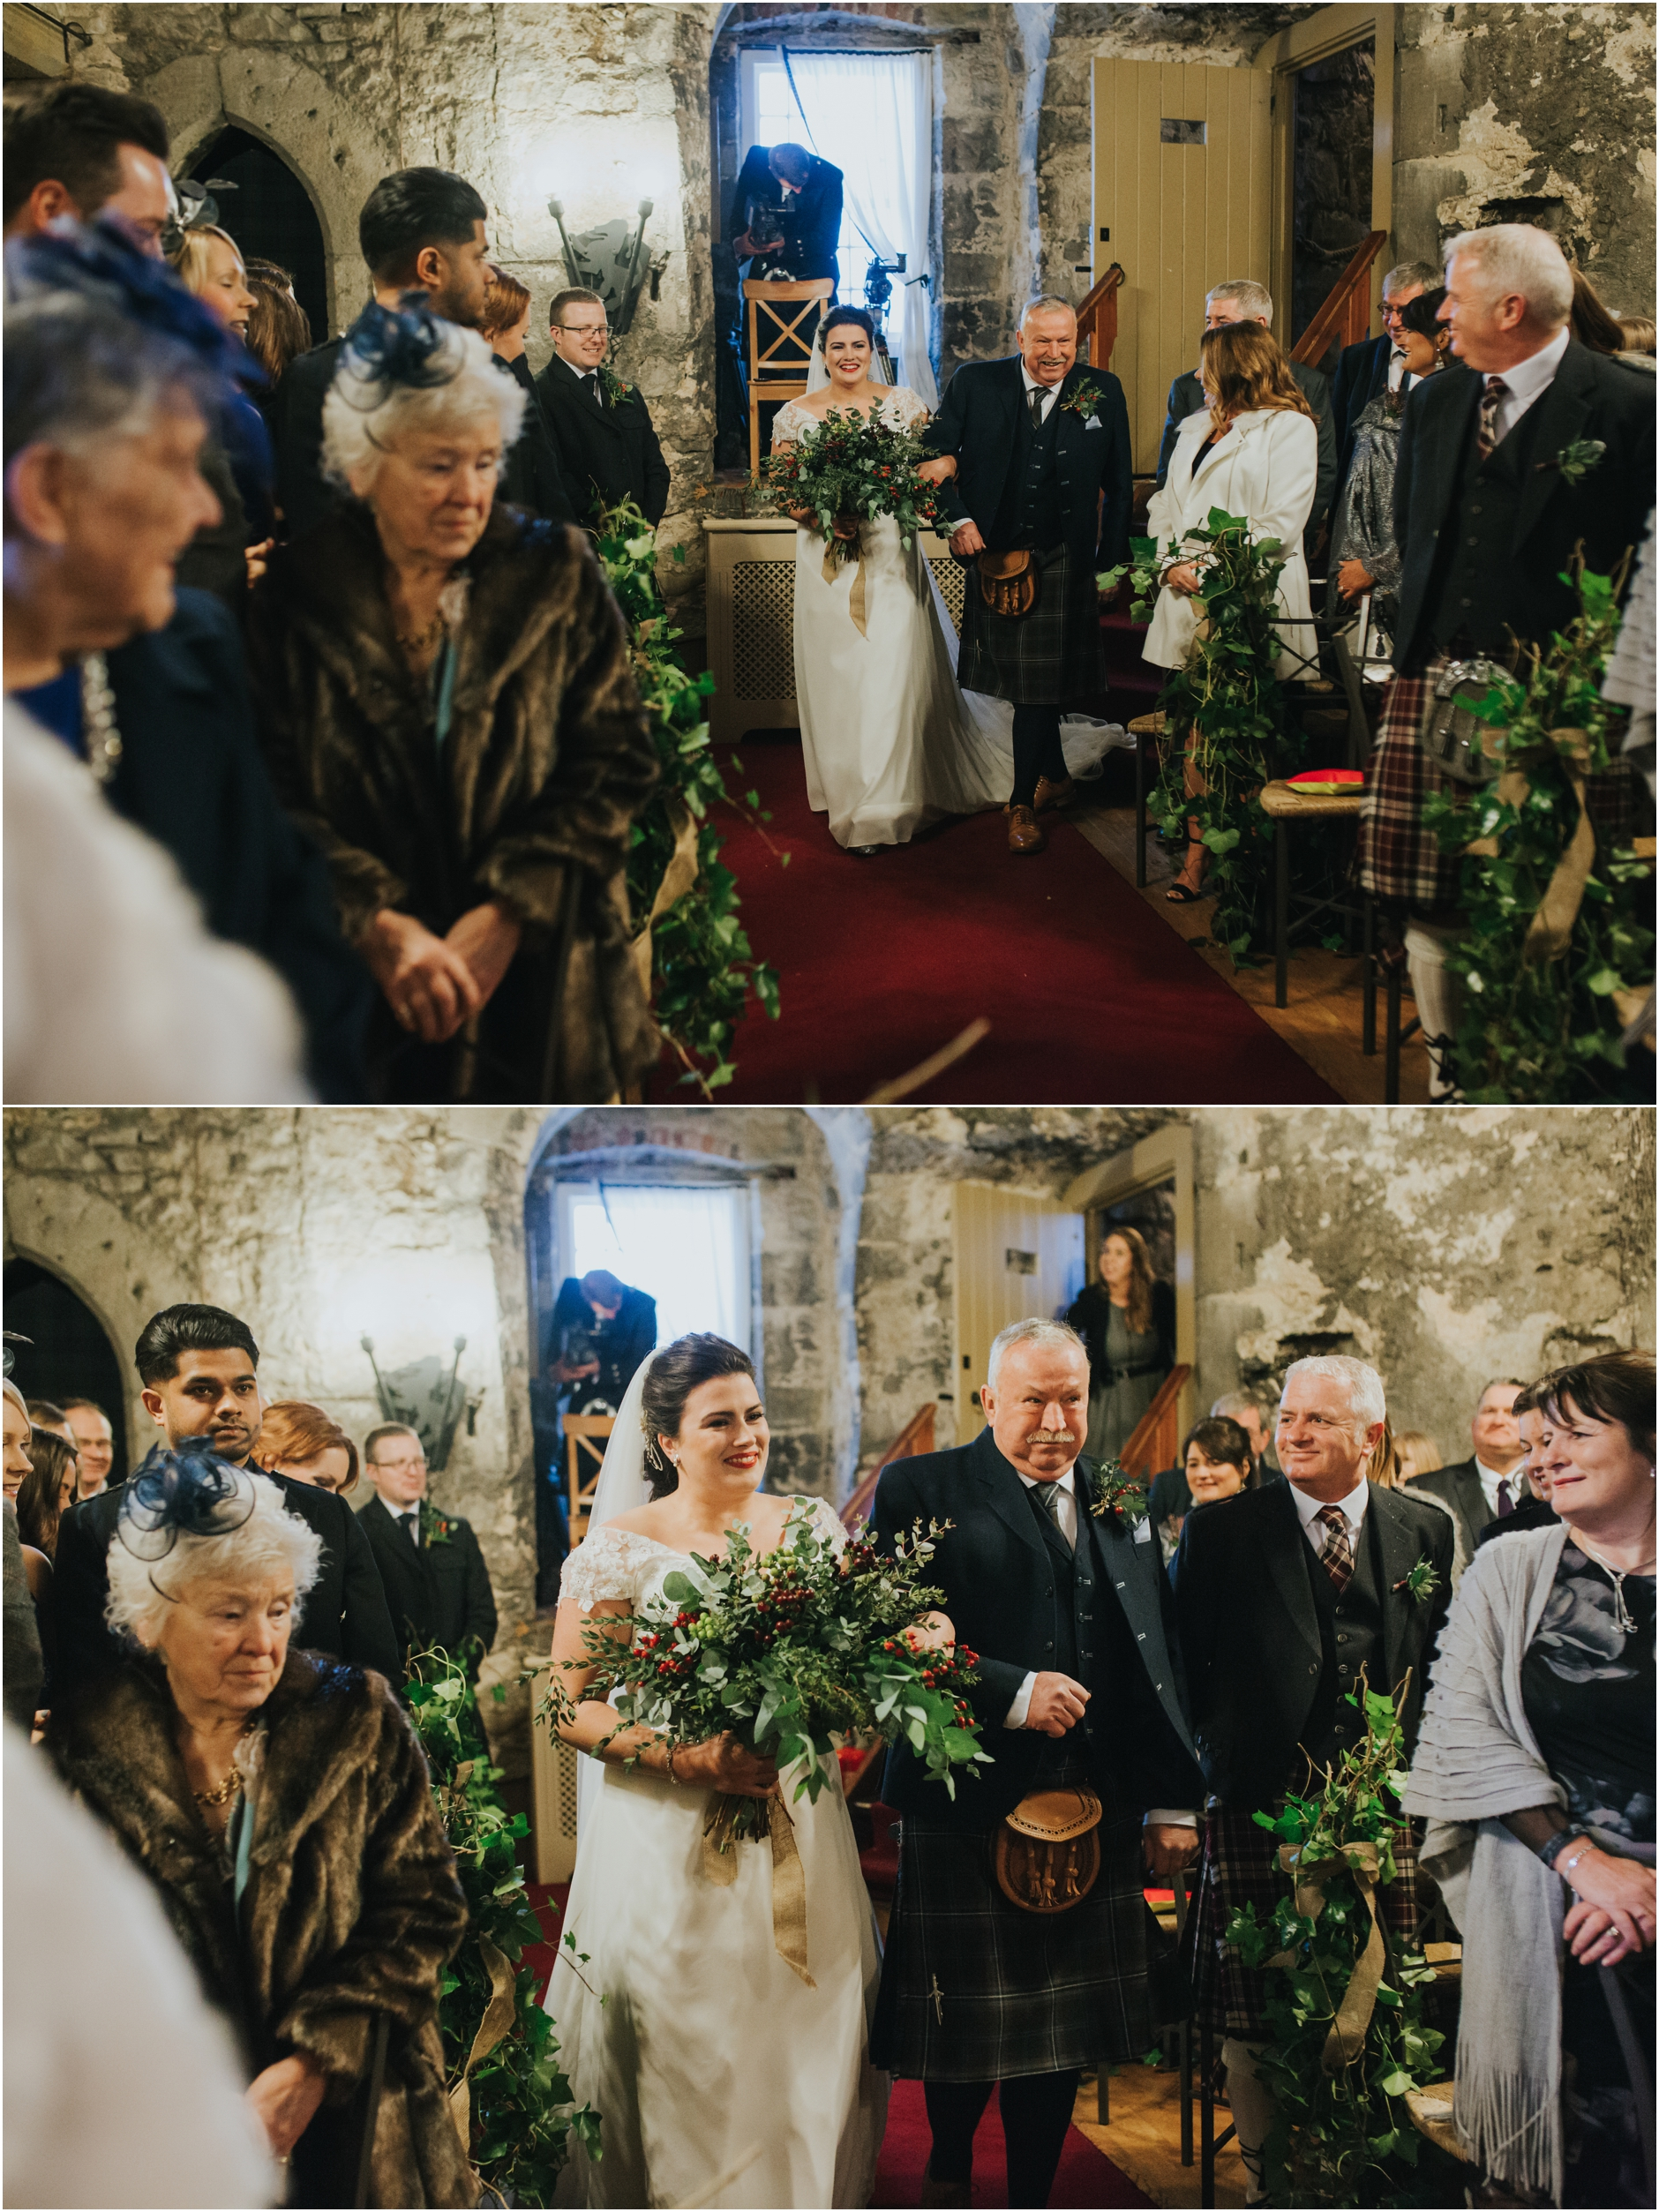 dundas castle wedding winter bride walking down the isle